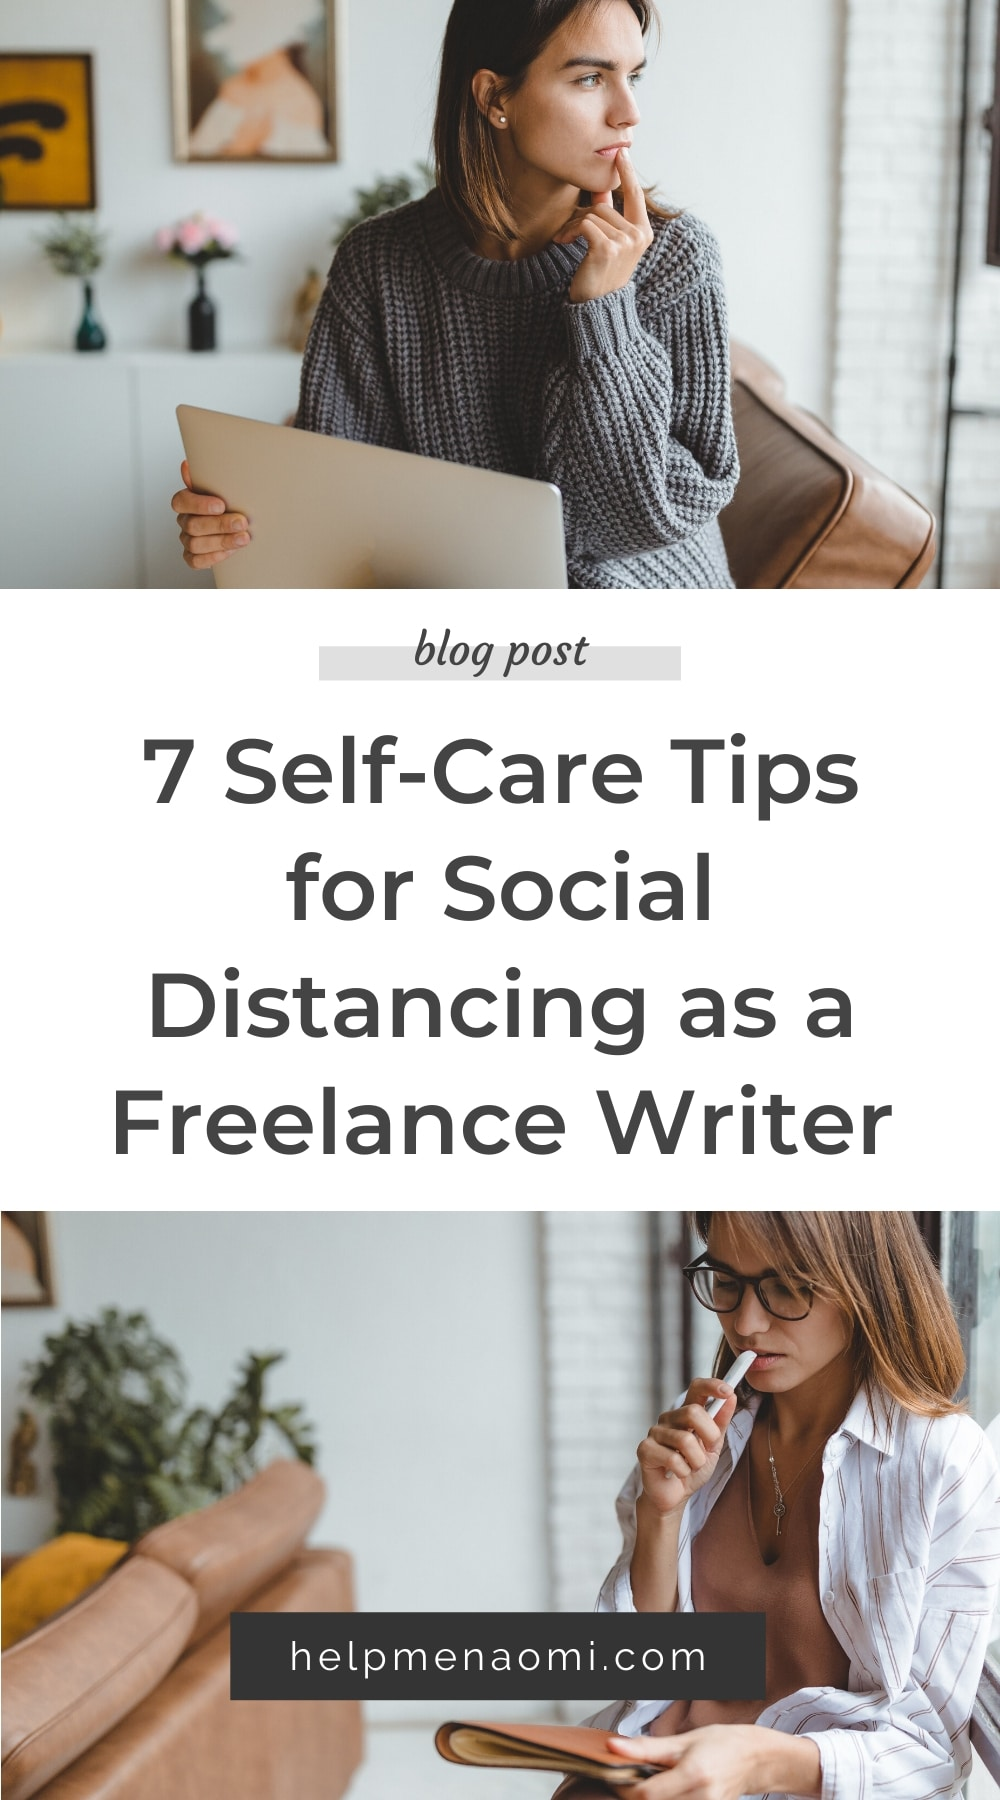 7 Self-Care Tips for Social Distancing as a Freelance Writer blog title overlay